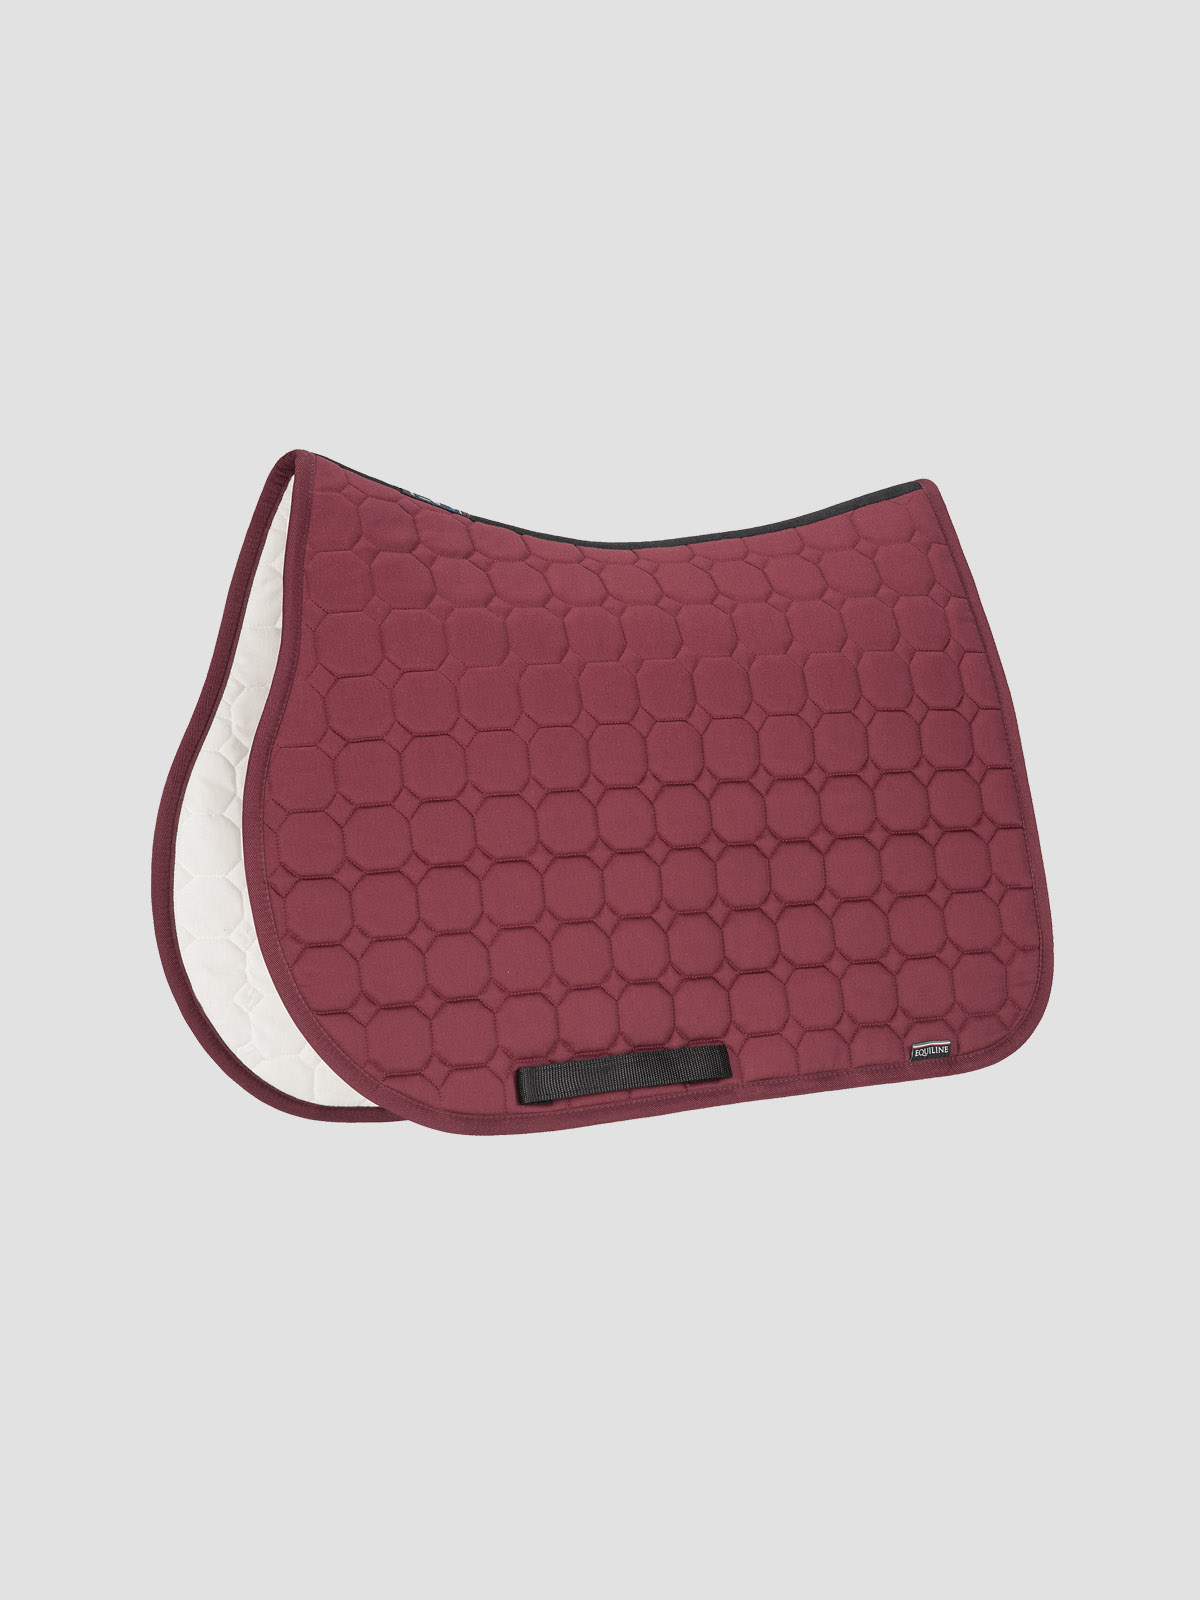 Octagon Saddle Pad 6